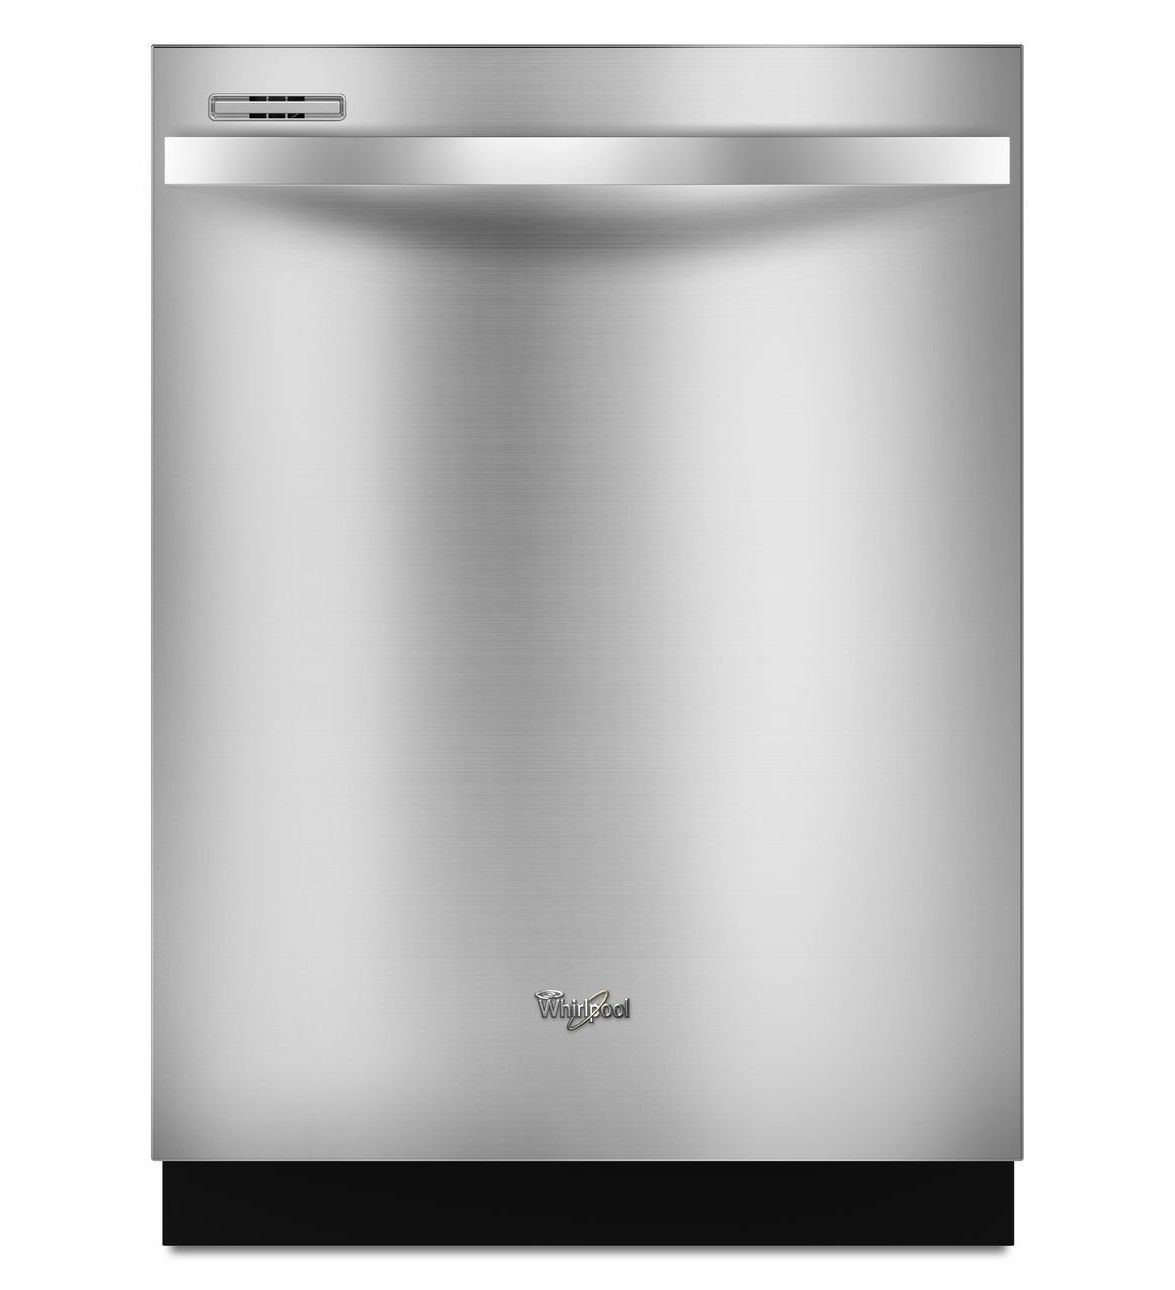 Whirlpool Gold Series Dishwasher With Sensor Cycle Wdt710paym